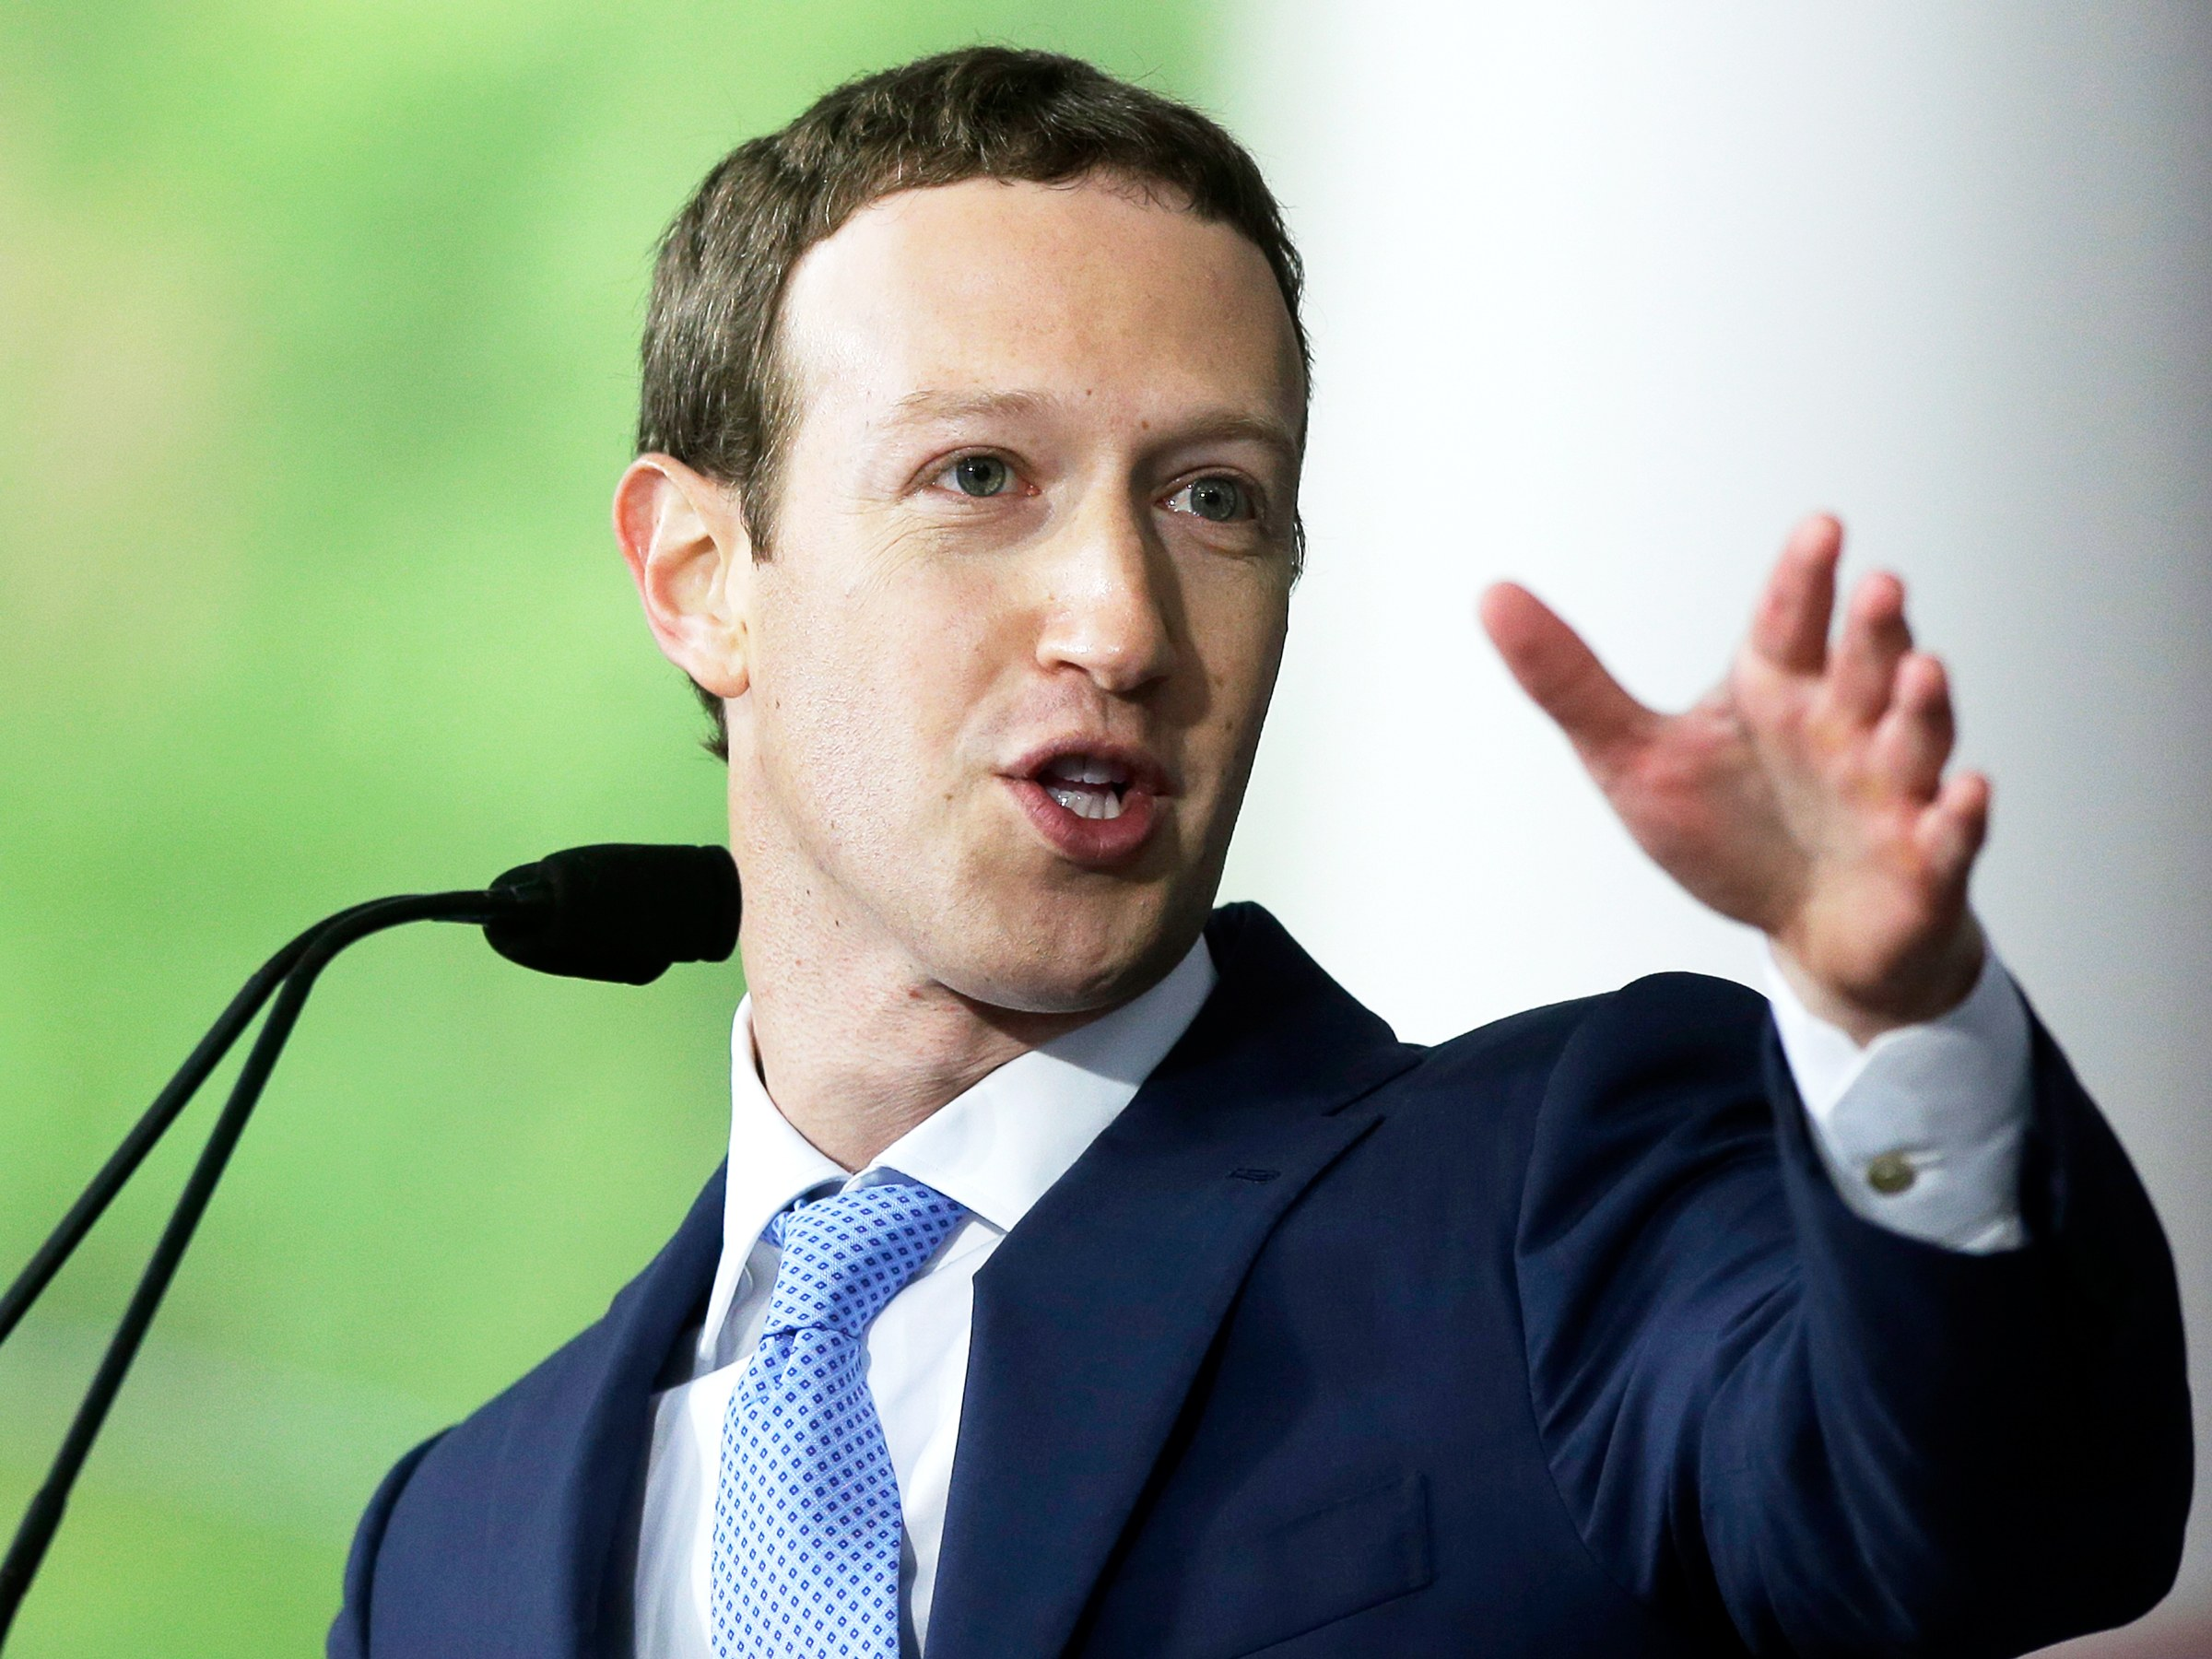 Internet Society partners with Facebook to expand Internet connectivity in Africa